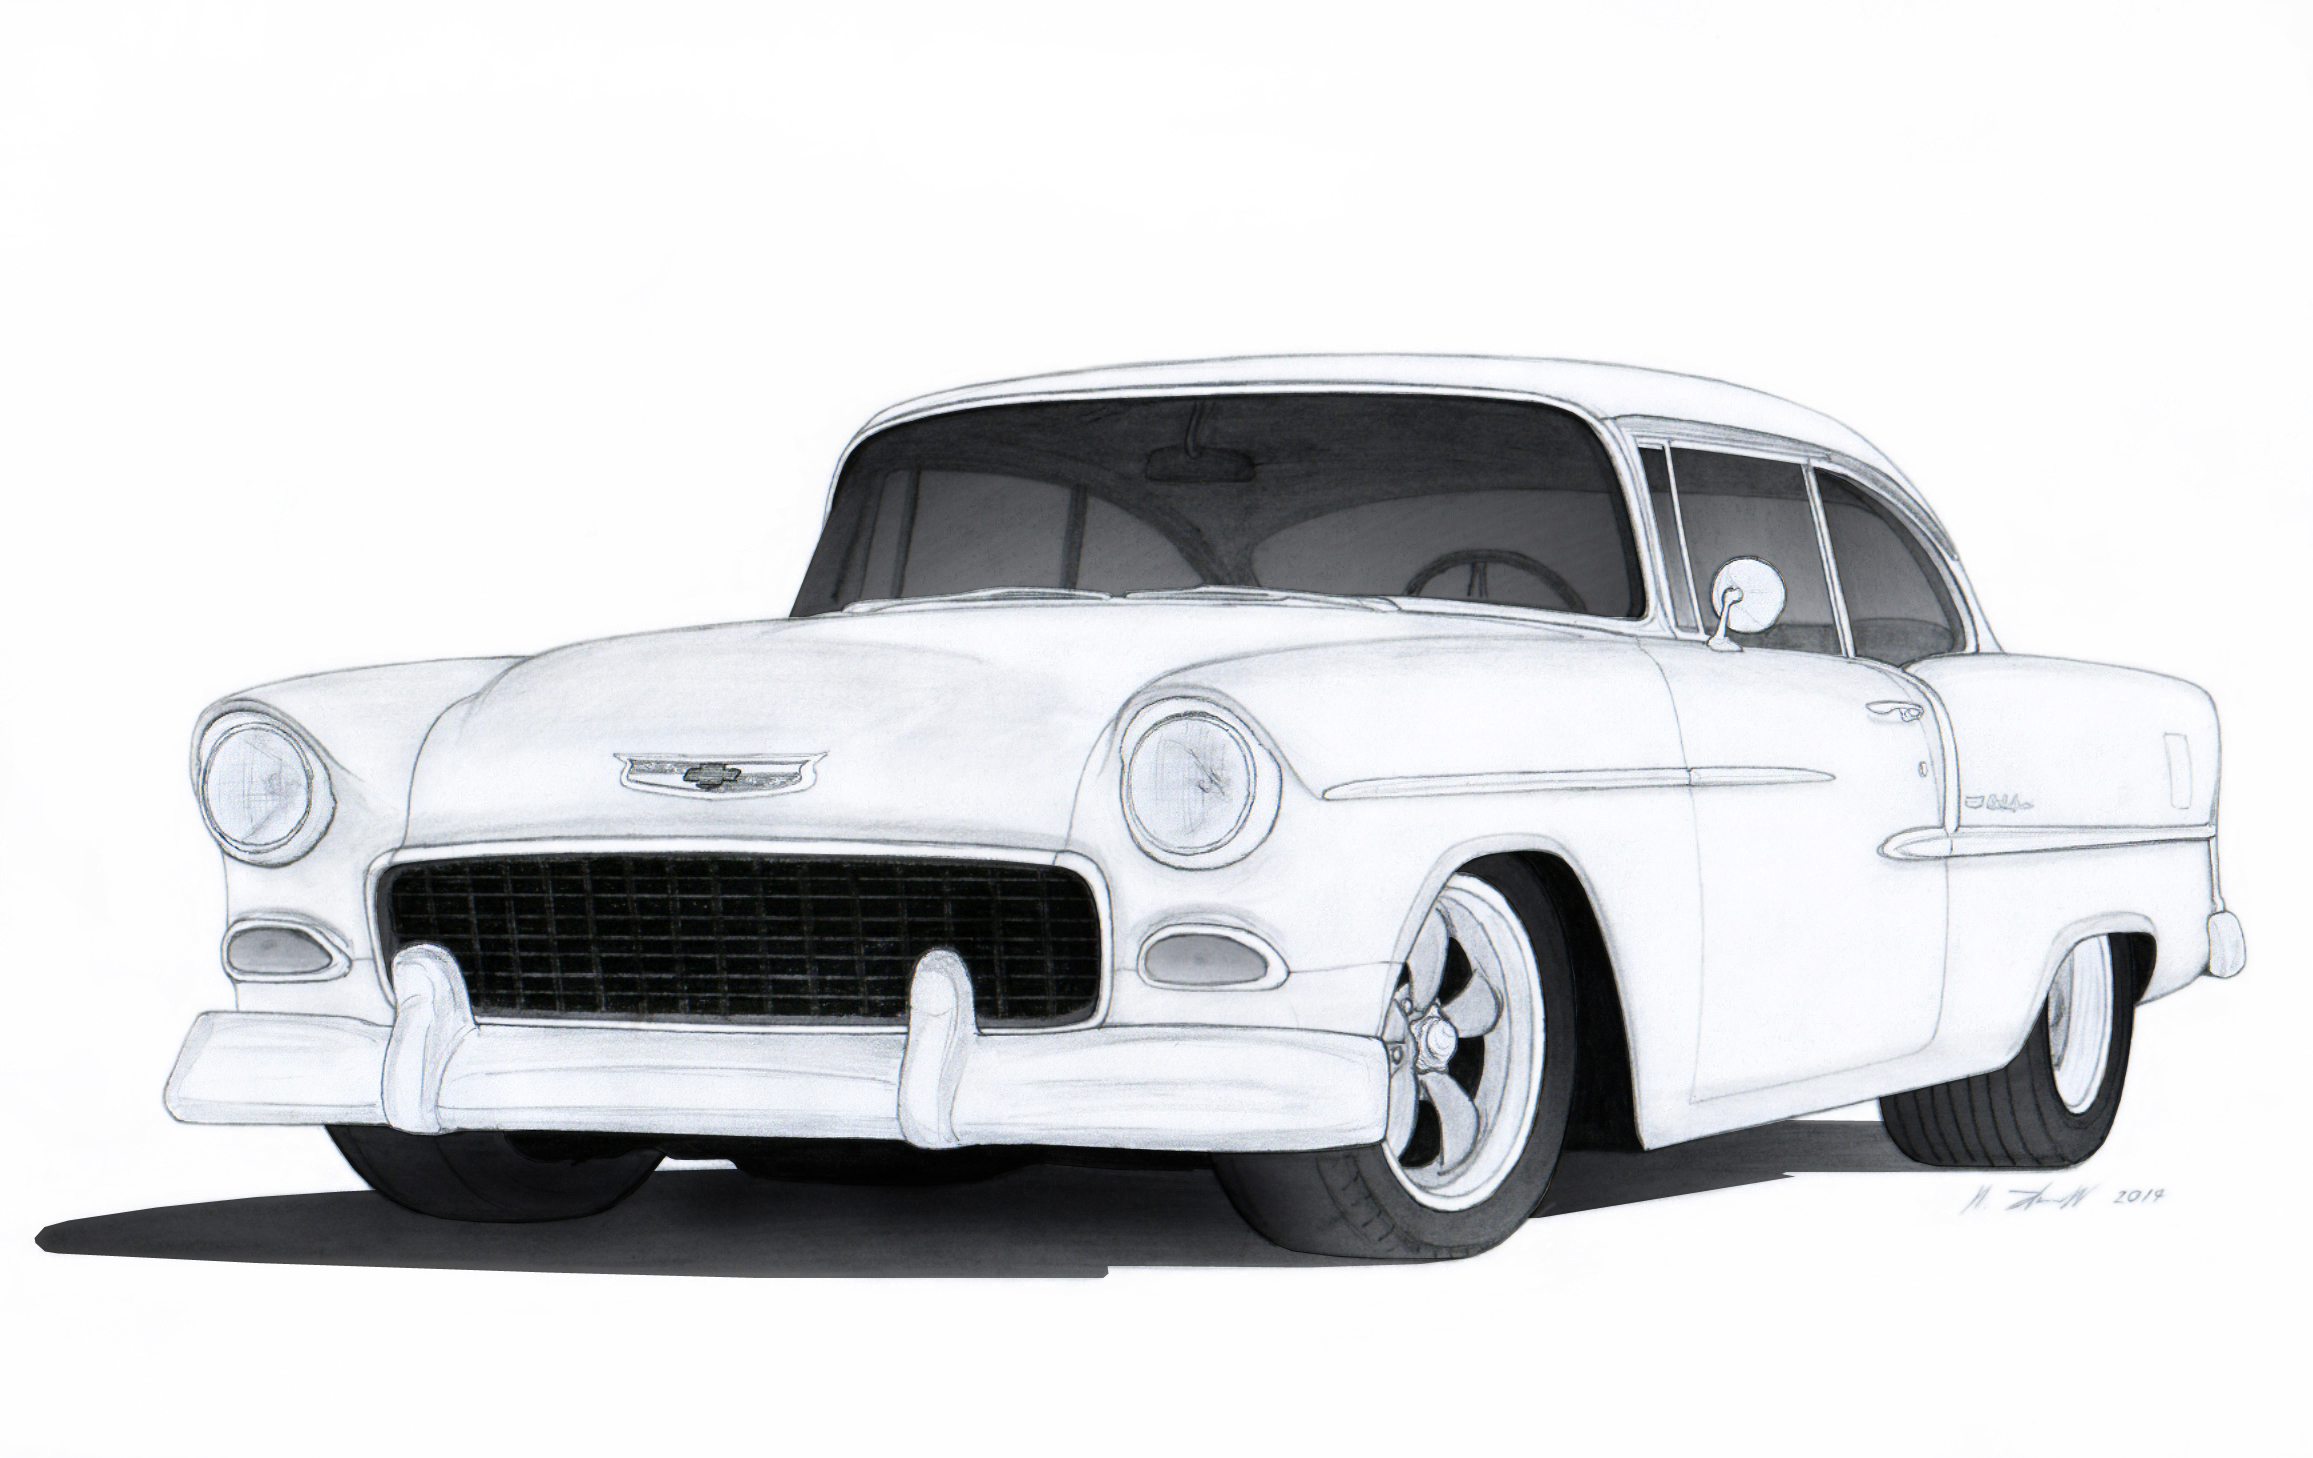 1955 Chevrolet Bel Air Drawing by Vertualissimo on DeviantArt